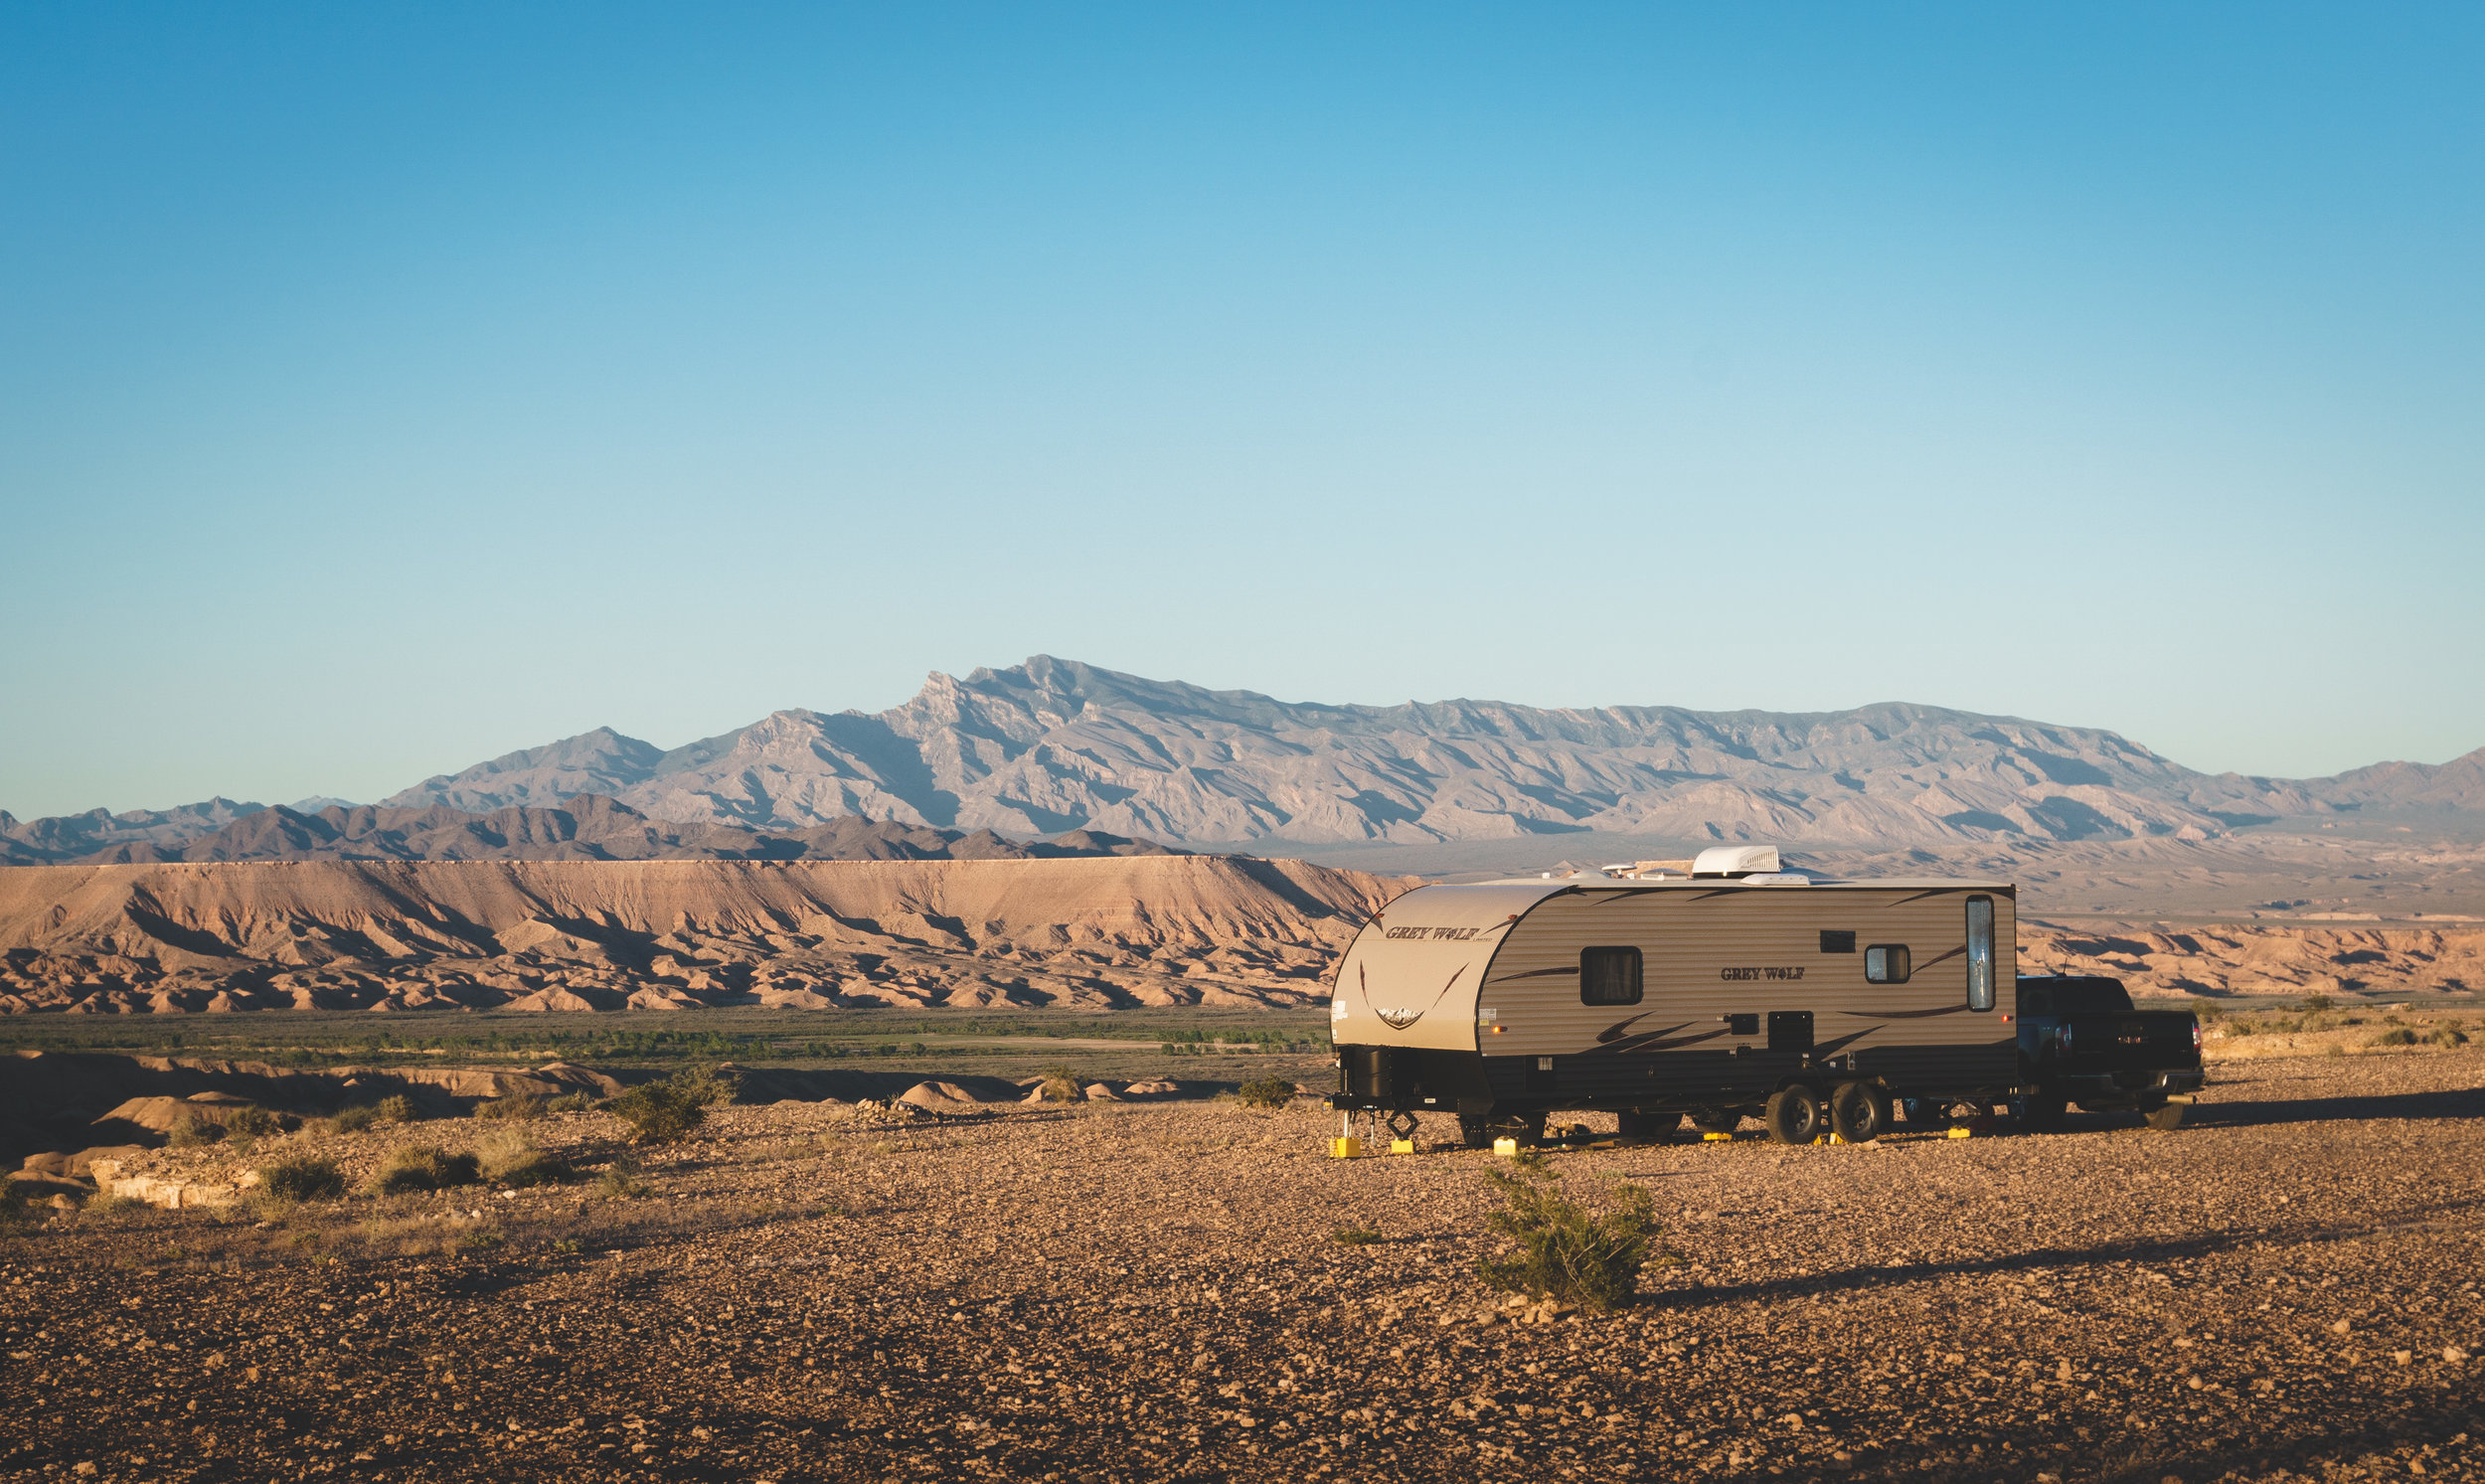 This is our Grey Wolf Travel Trailer. We had a great year traveling around in it, reaching some pretty awesome boondocking spots.